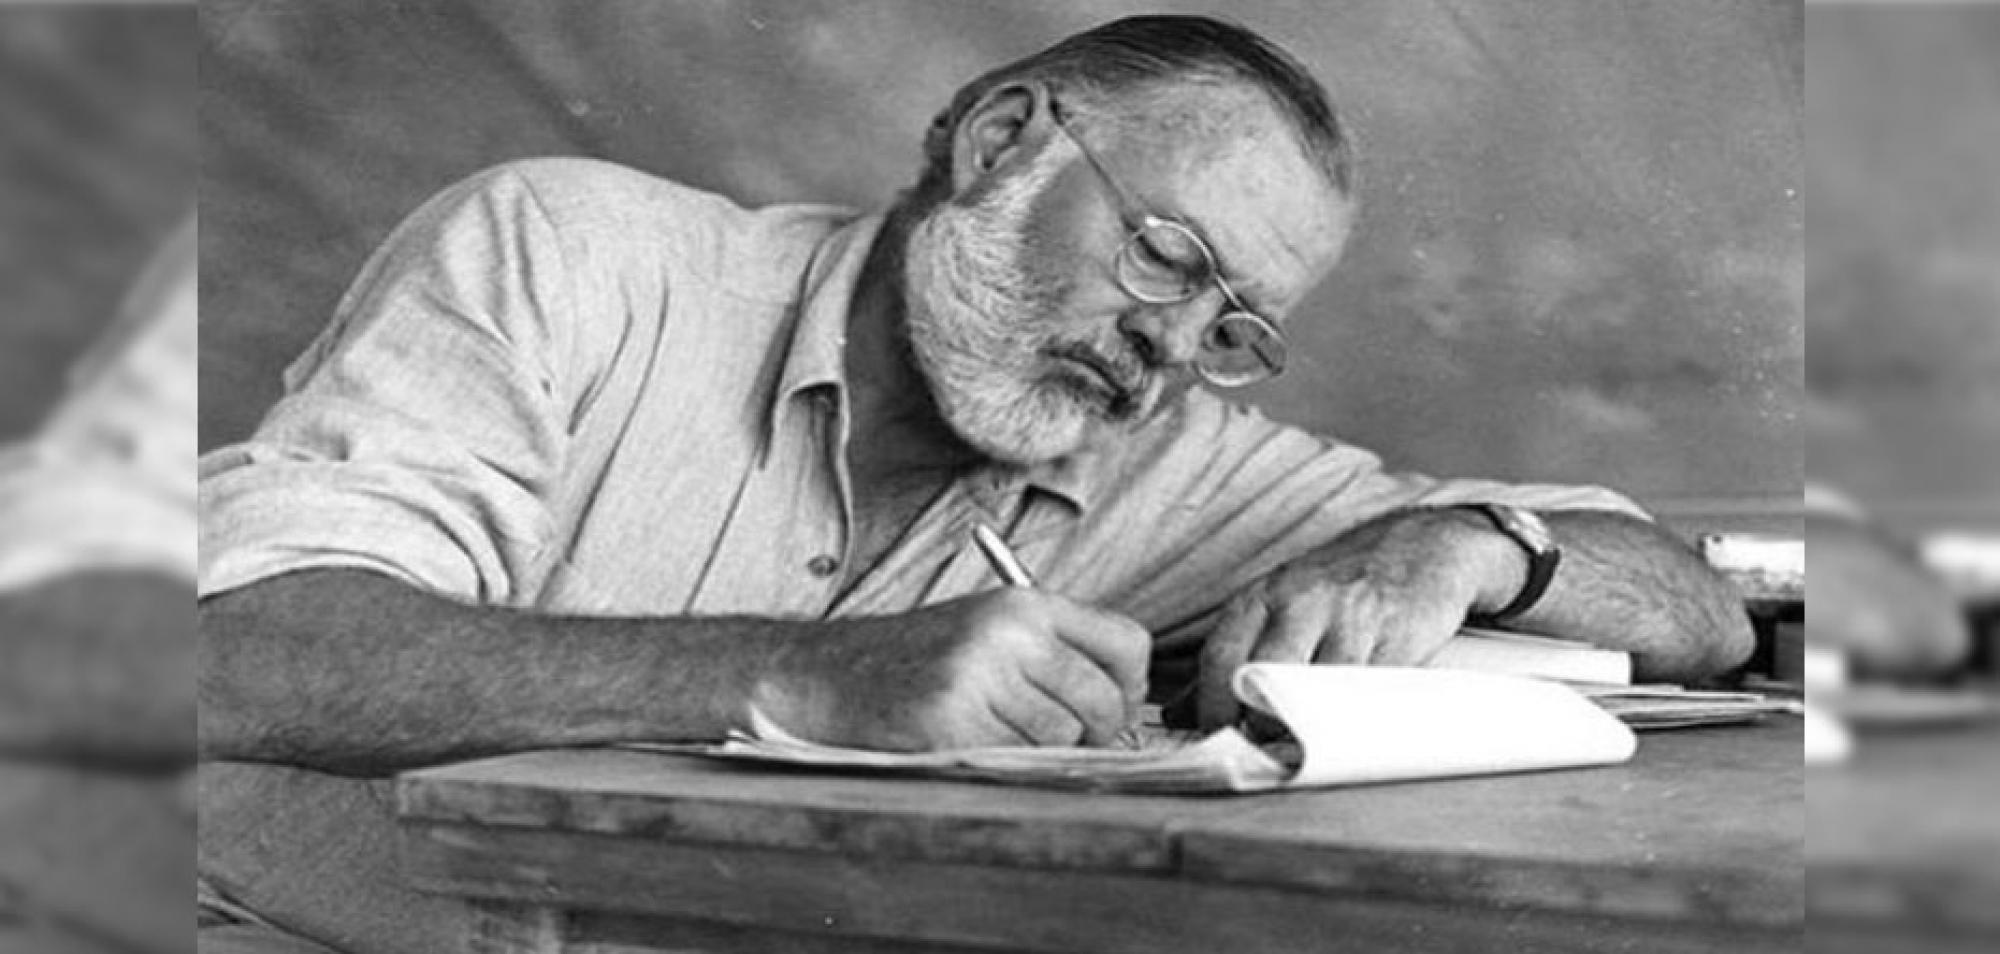 Hemingway's Life and Work Brings Wwriters from Six Countries to Cuba